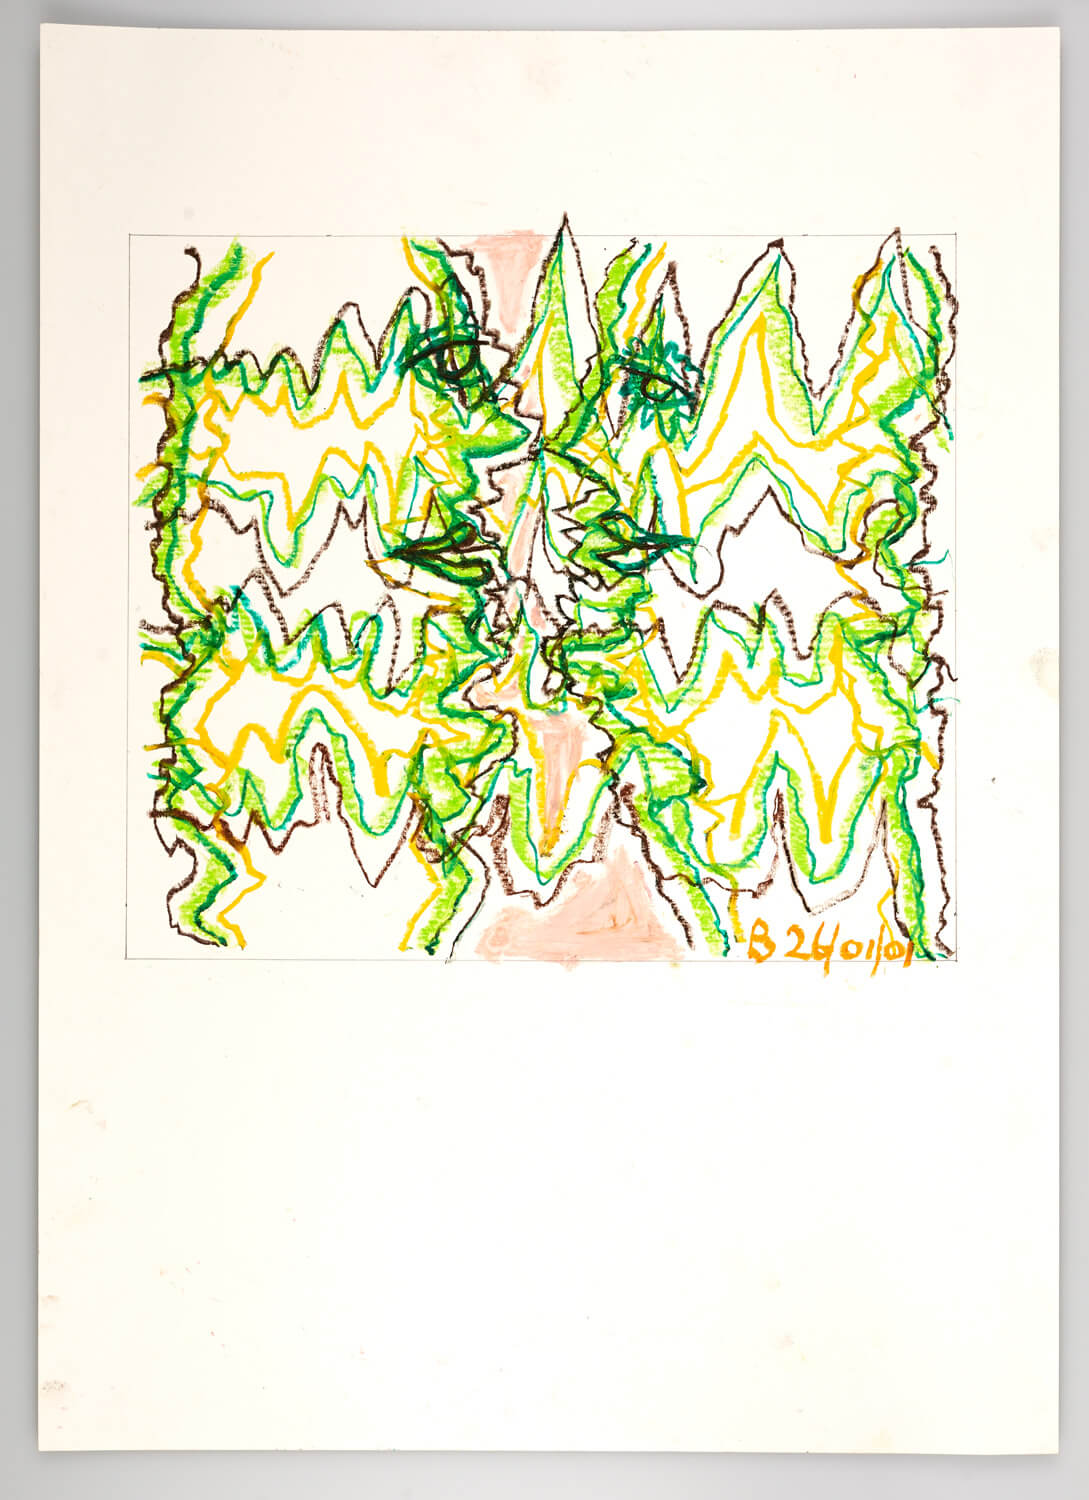 JB127 - Faces in a landscape - 2001 - 36 x 41 cm - Conte on paper